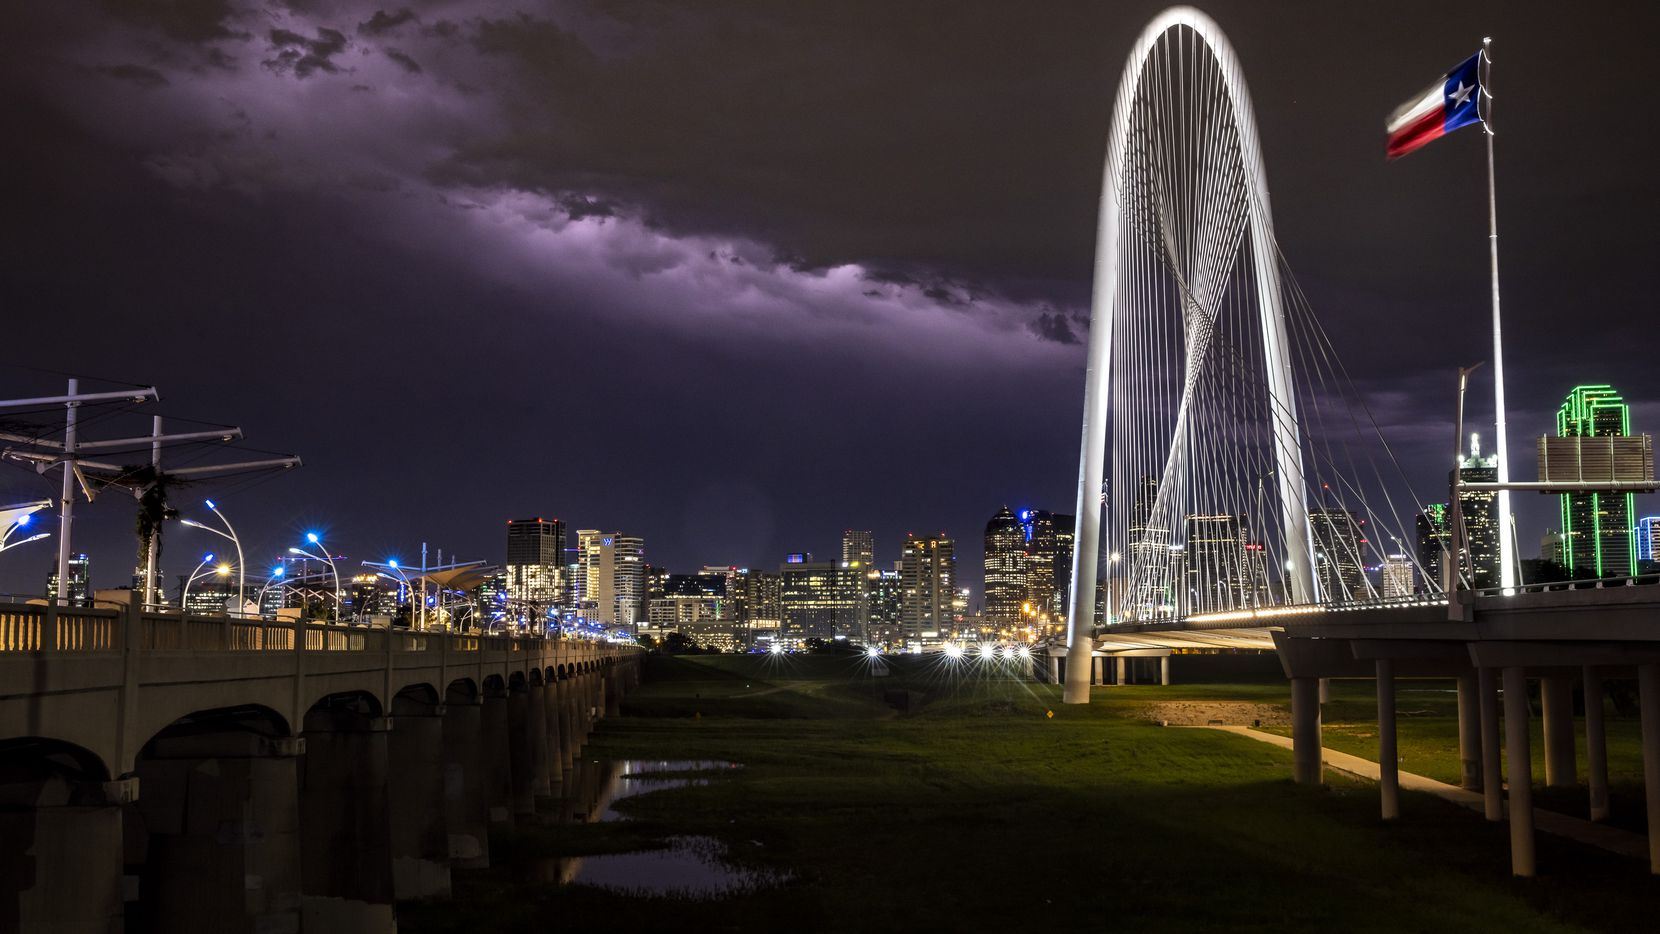 A lightning storm strikes in the backdrop of the skyline in downtown Dallas on Monday night, May 3, 2021.